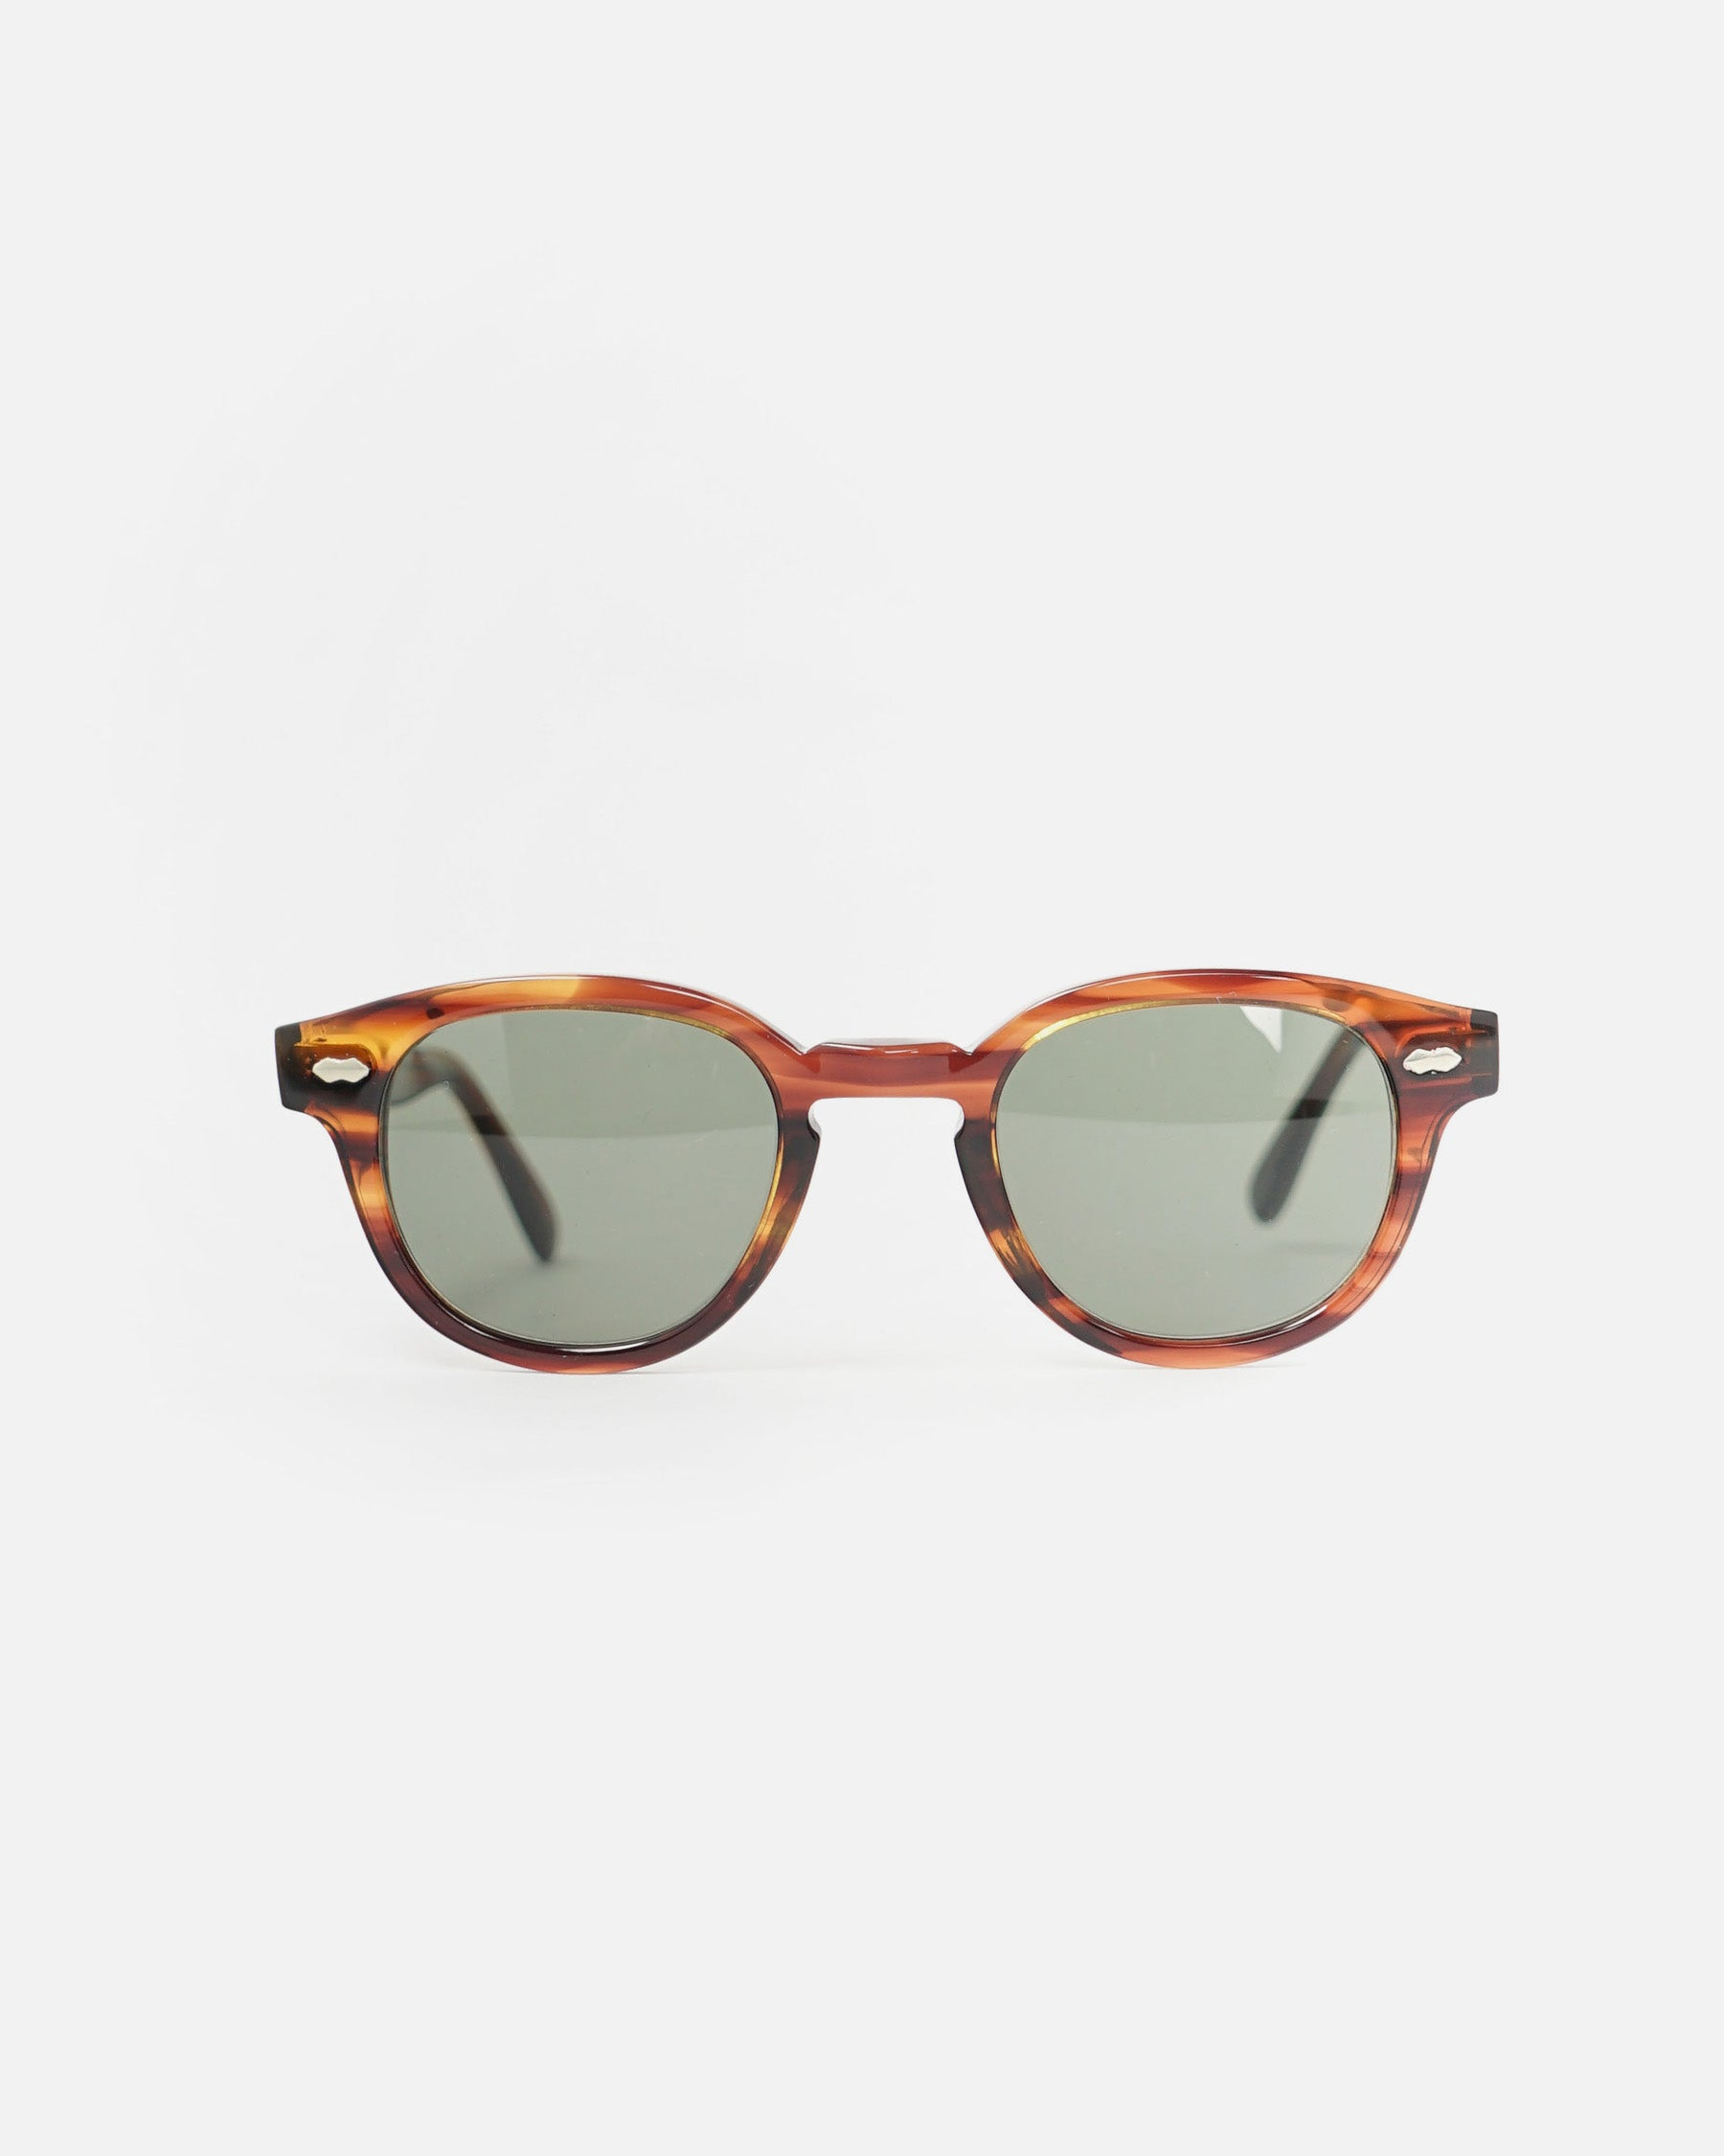 MODEL 511 Sunglasses Dark Brown Tortoise